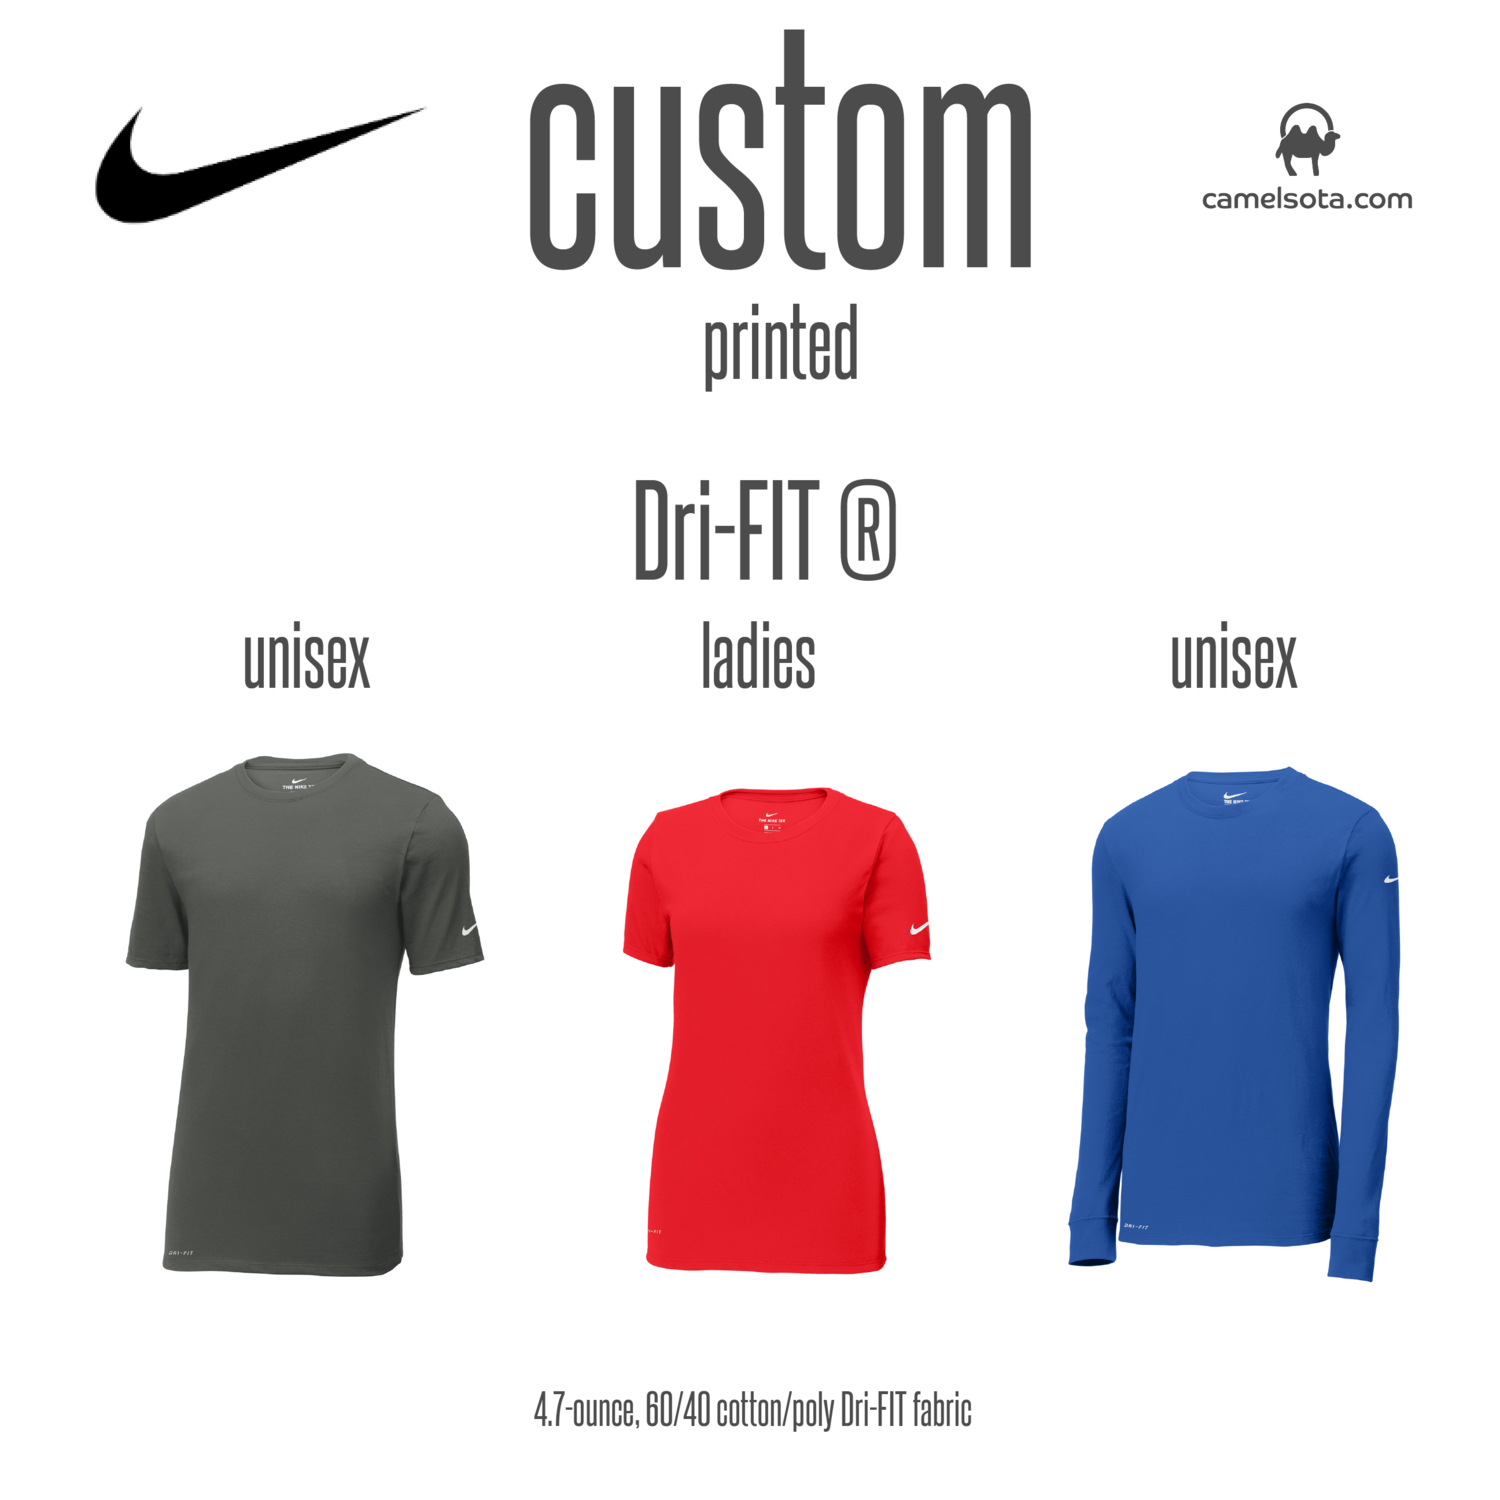 Custom Nike Dri-FIT Cotton/Poly Tee